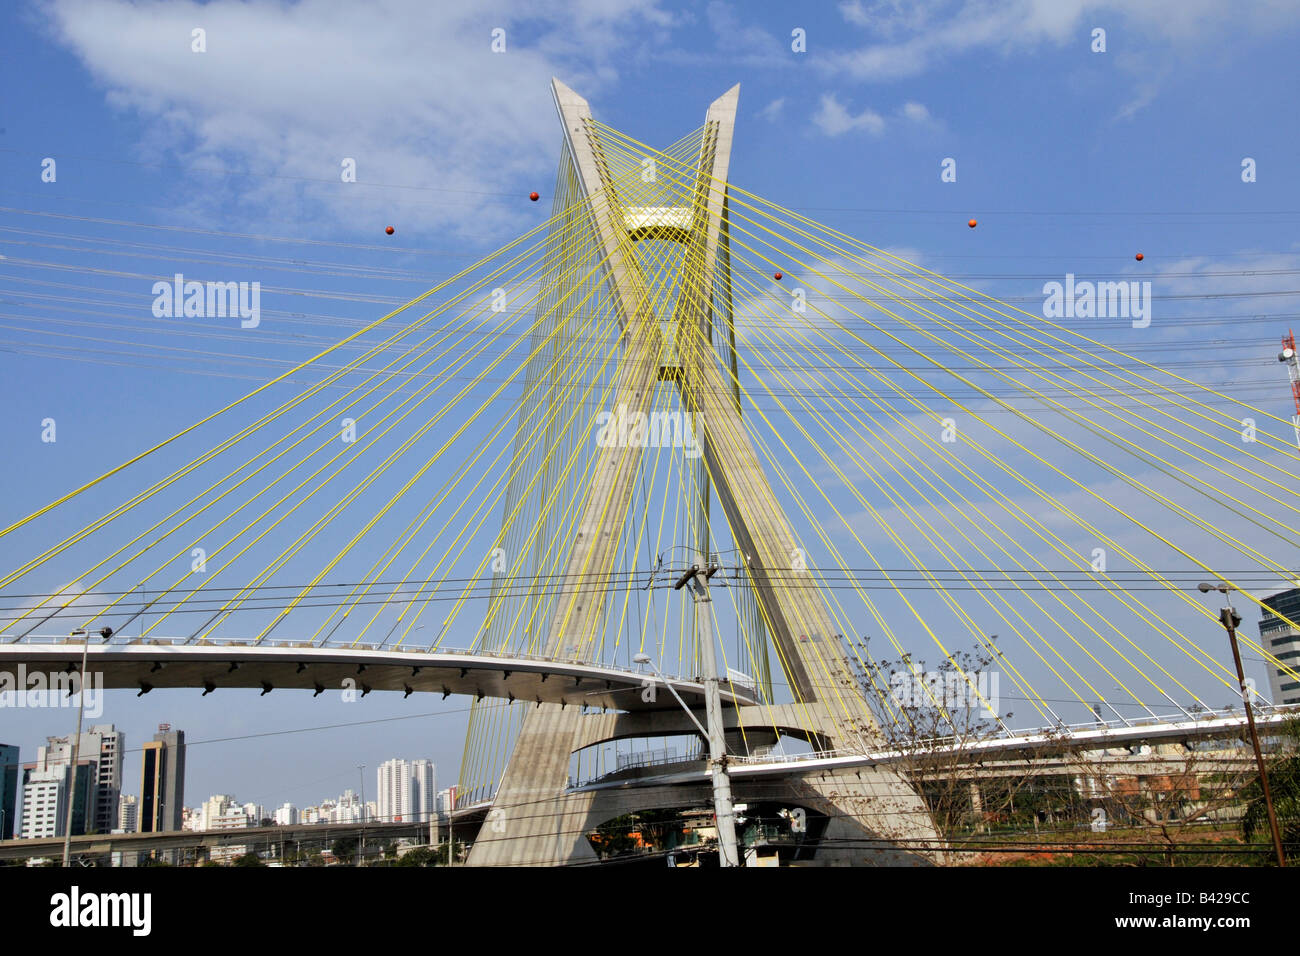 Octavio Frias Cable Bridge Sao Paulo Brazil - Stock Image